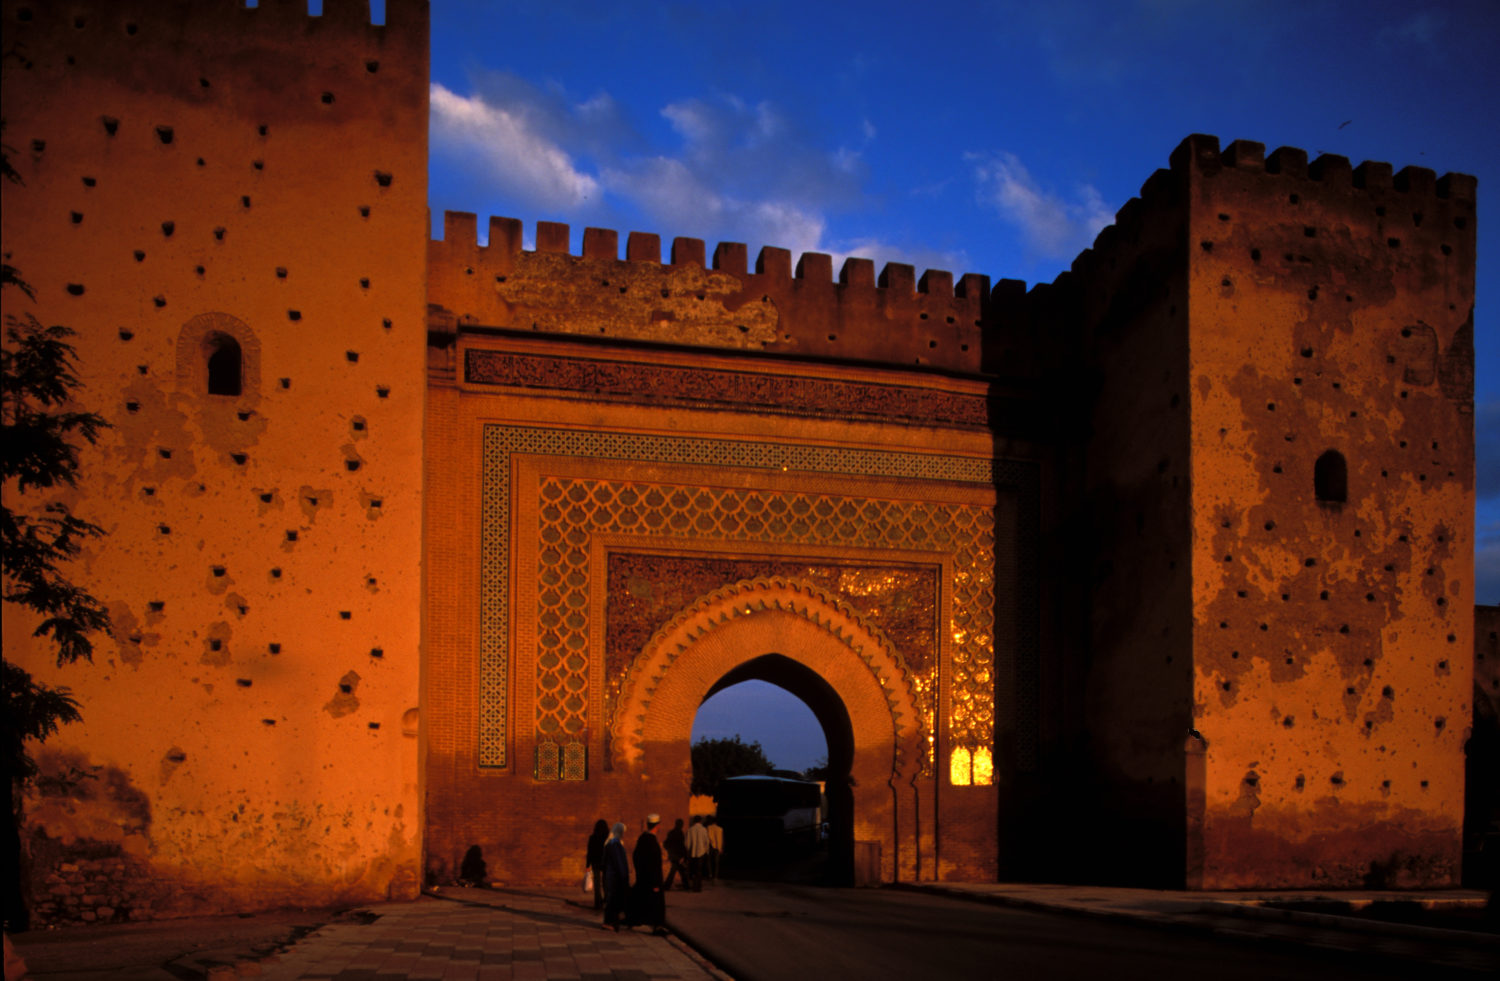 (English) Meknès in the top 10 cities in the world to visit in 2019 according to Lonely Planet